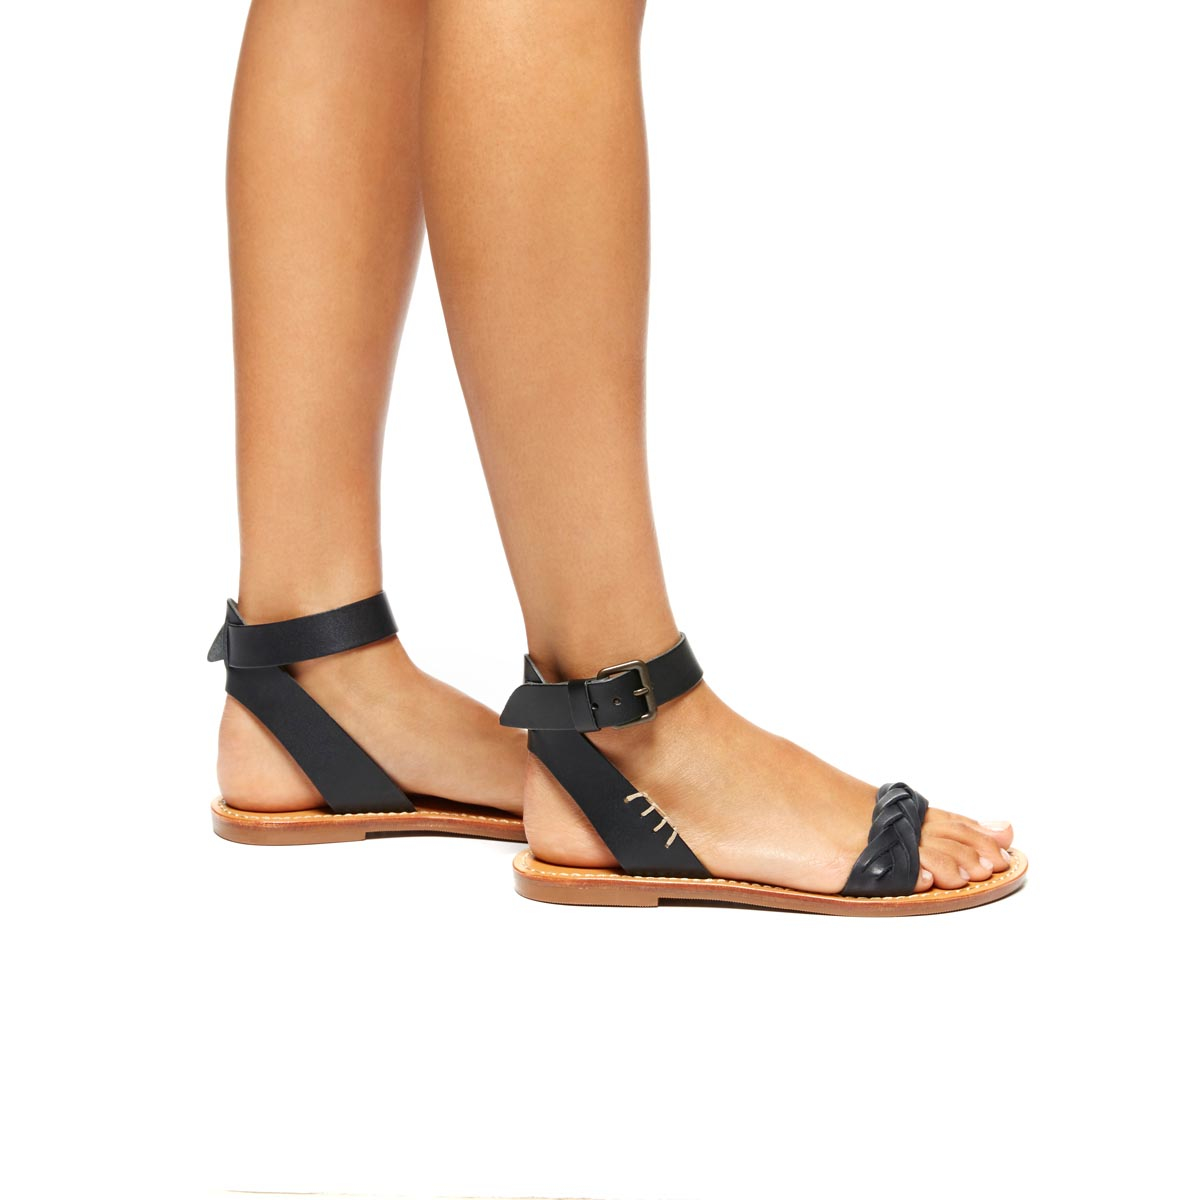 Lyst - Soludos Leather Braided Ankle Strap Sandal in Black